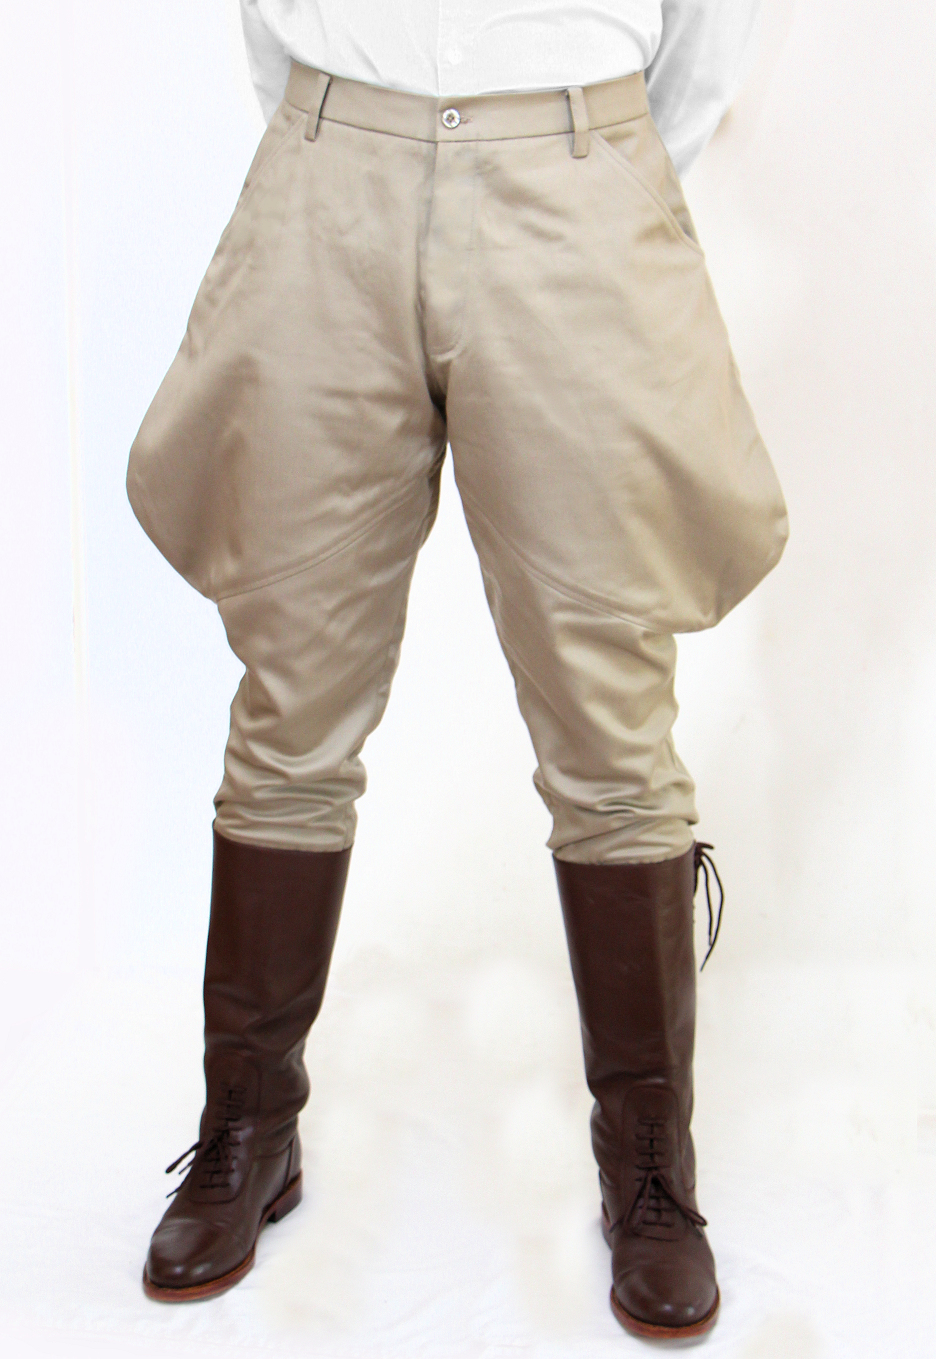 1920s Men's Pants, Trousers, Plus Fours, Knickers Breeches- More colors AUD 190.00 AT vintagedancer.com